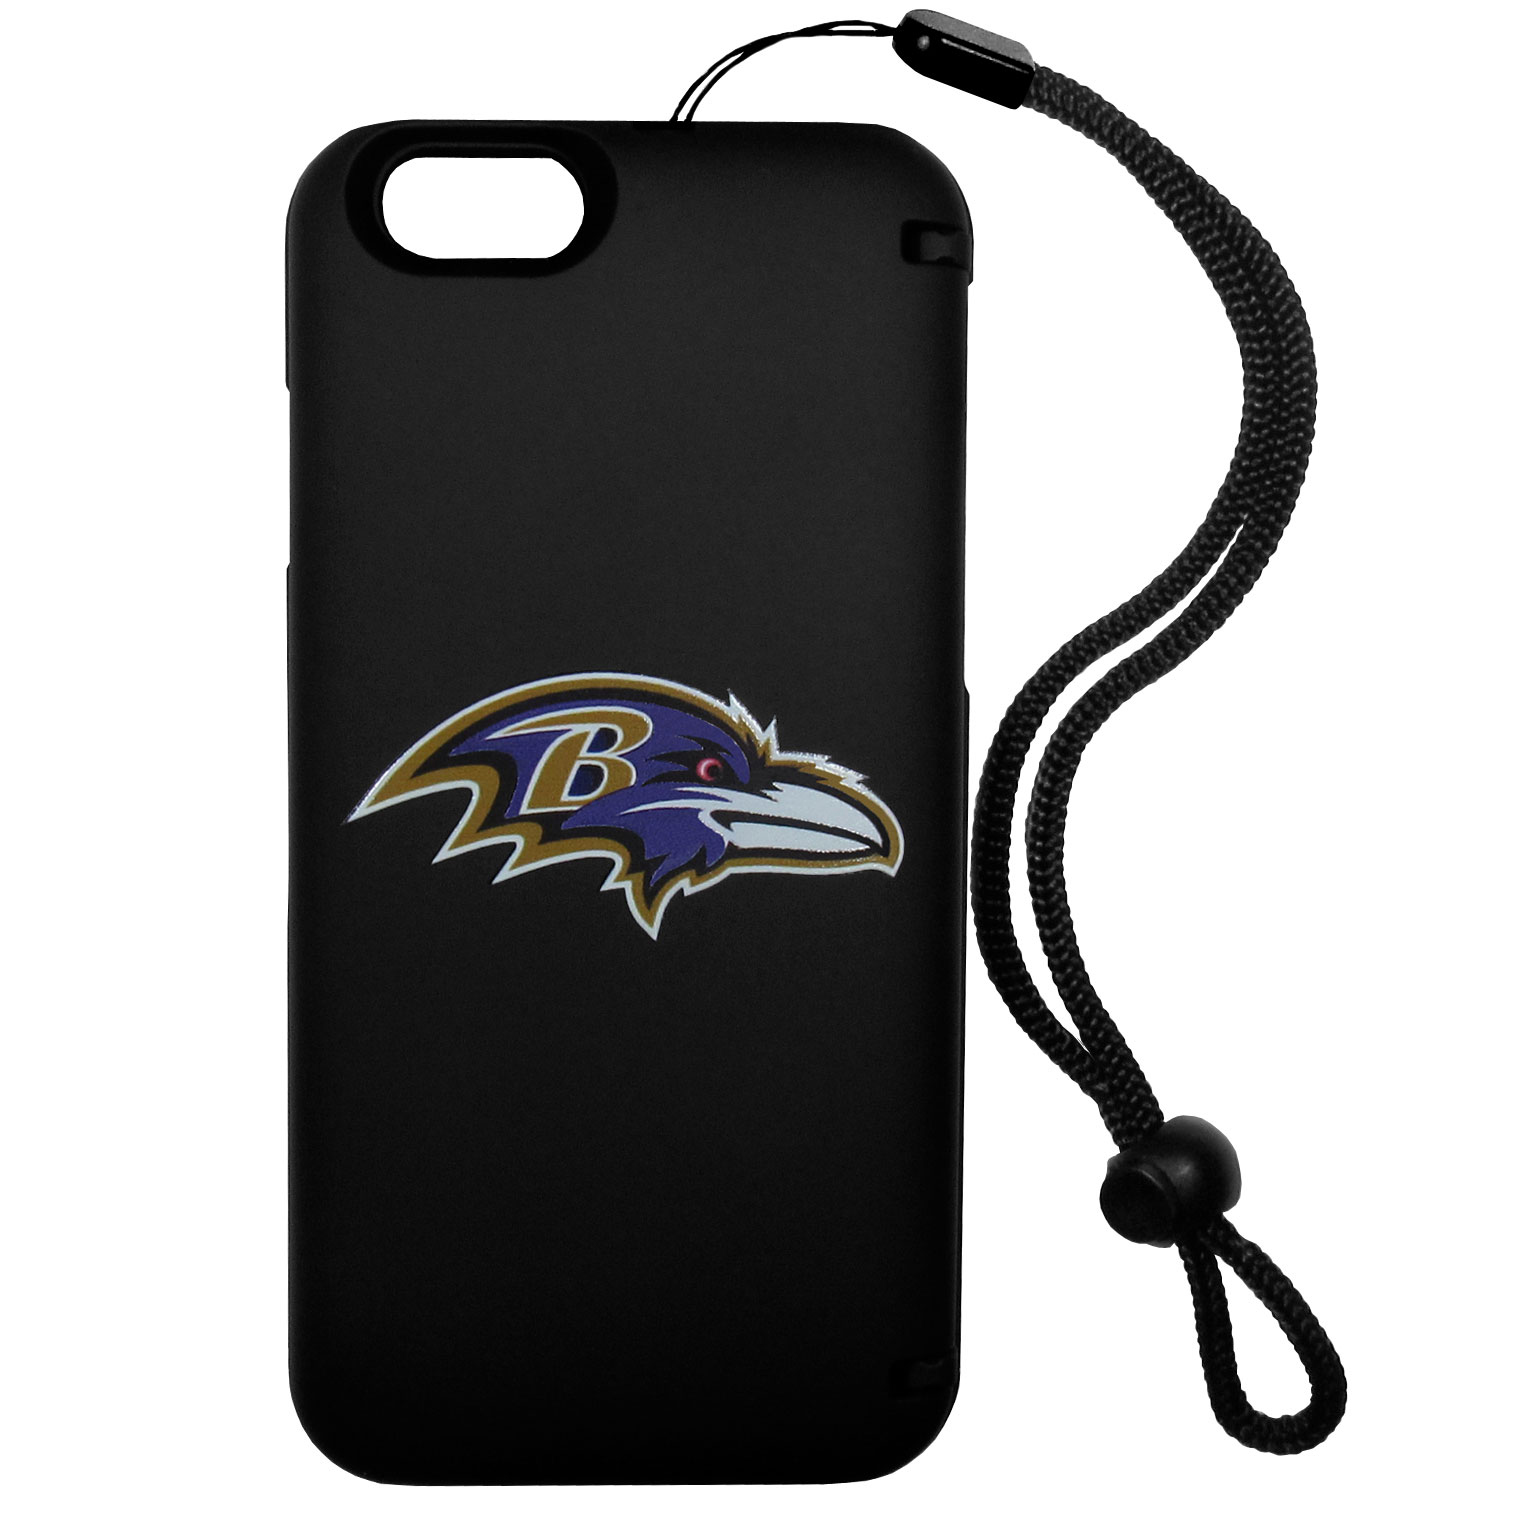 Baltimore Ravens iPhone 6 Everything Case - This case really does have everything but the kitchen sink! The hidden compartment lets you keep your cards, money and tickets to the big game safe and secure and has a compact mirror so you can make sure your game face is ready to go. It also comes with a kickstand to make chatting and watching videos a breeze. The wrist strap allows you to travel with ease with your everything case. If that's not enough, it also comes with the Baltimore Ravens logo printed in expert detail on the front.